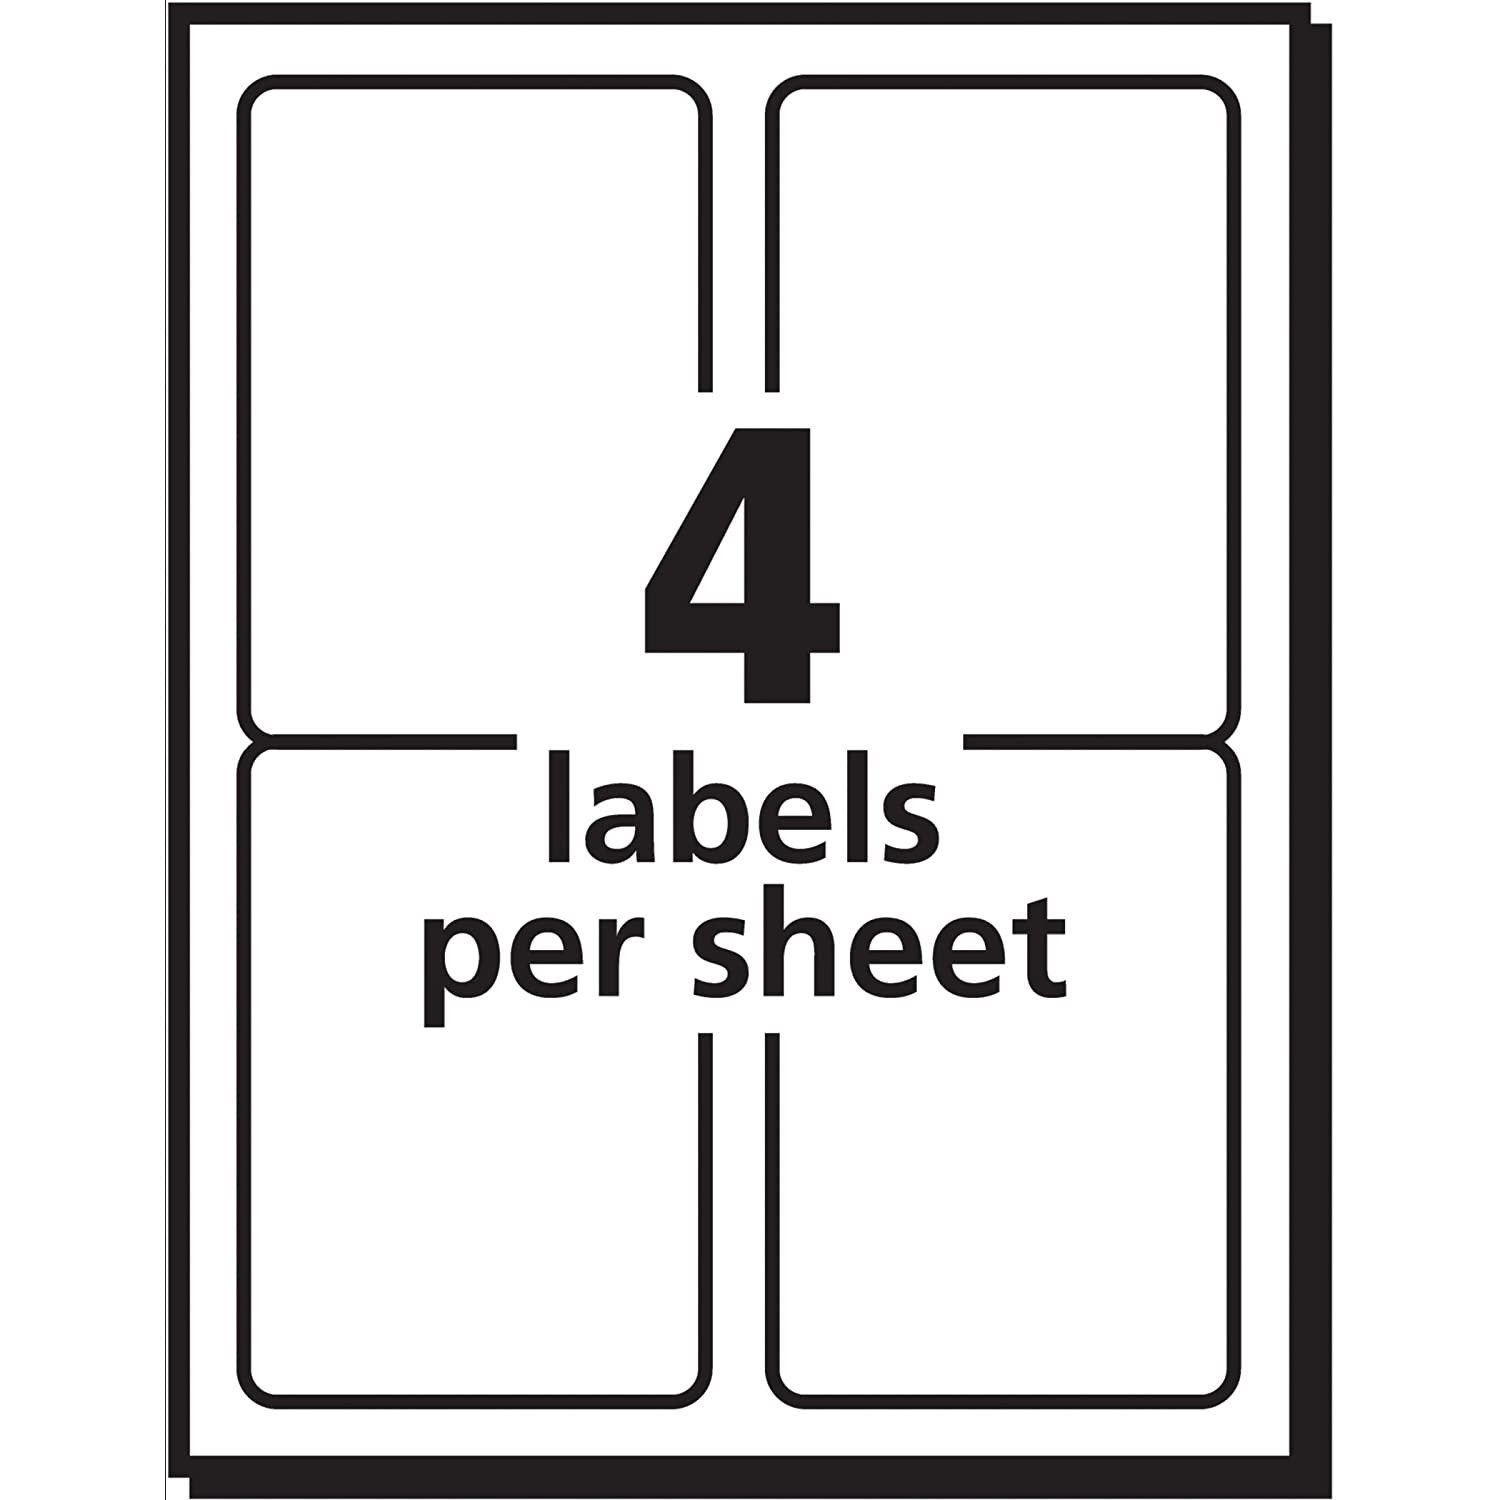 Avery Label Templates 1 X 1 1 Doubts About Avery Label Templates 1 X 1 You Should Clarify Address Label Template Label Templates Avery Label Templates